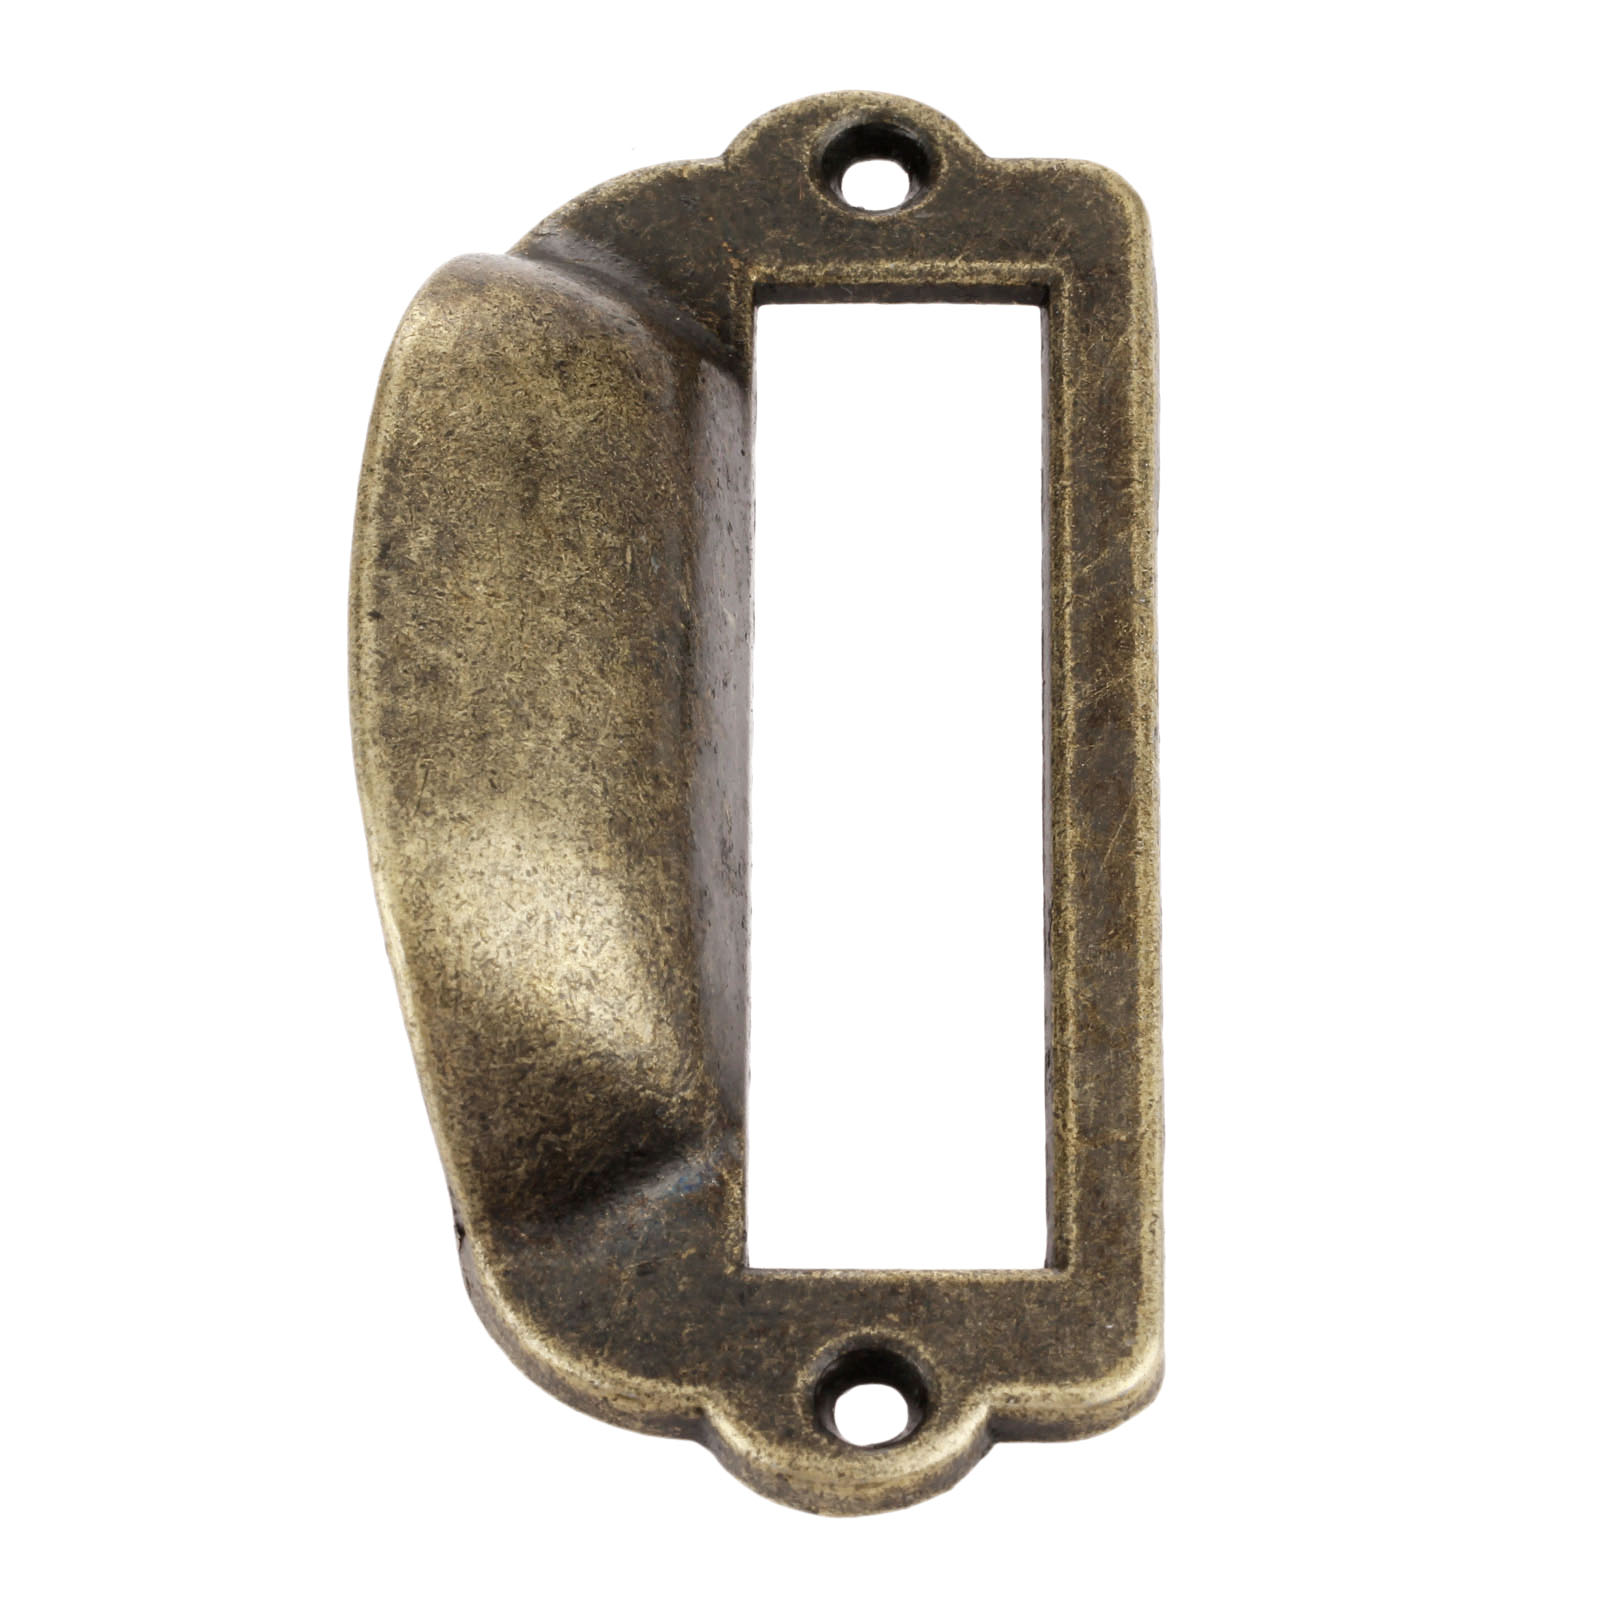 82x40mm Zinc Alloy Antique Brass Label Pull Frame Handle File Name Card Holder For Cabinet Drawer Box Case Furniture Hardware in Cabinet Pulls from Home Improvement